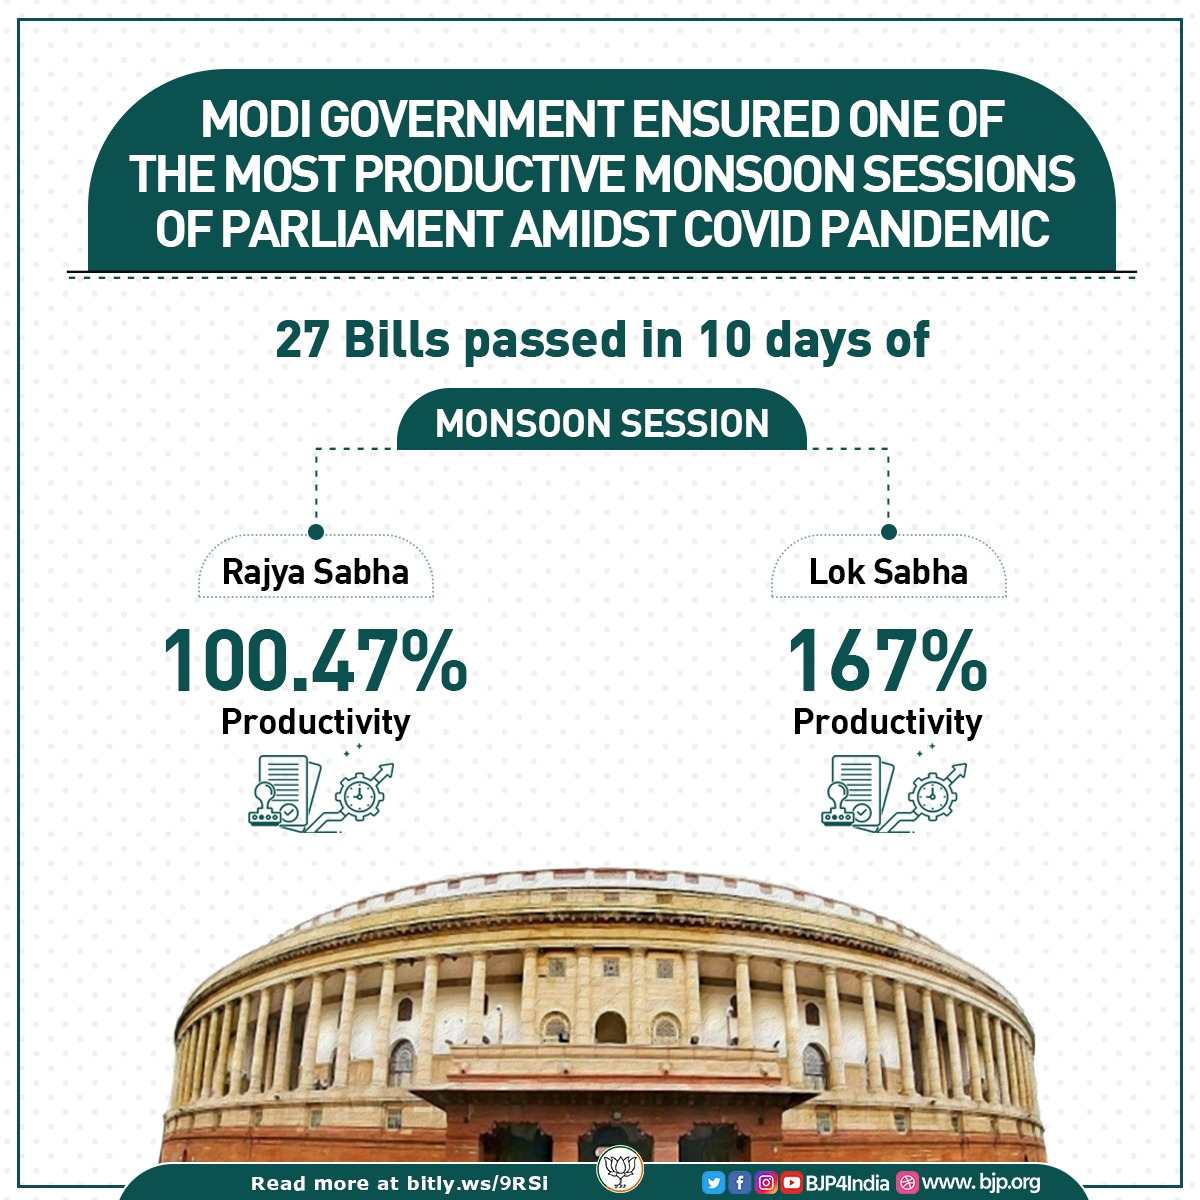 Modi government ensured one of the most productive monsoon sessions of Parliament amidst COVID Pandemic.  27 bills were passed in 10 days of the session without any day off or holiday.  Lok Sabha and Rajya Sabha recorded productivity of 167% and 100.47% respectively. https://t.co/4BGsoOMokQ